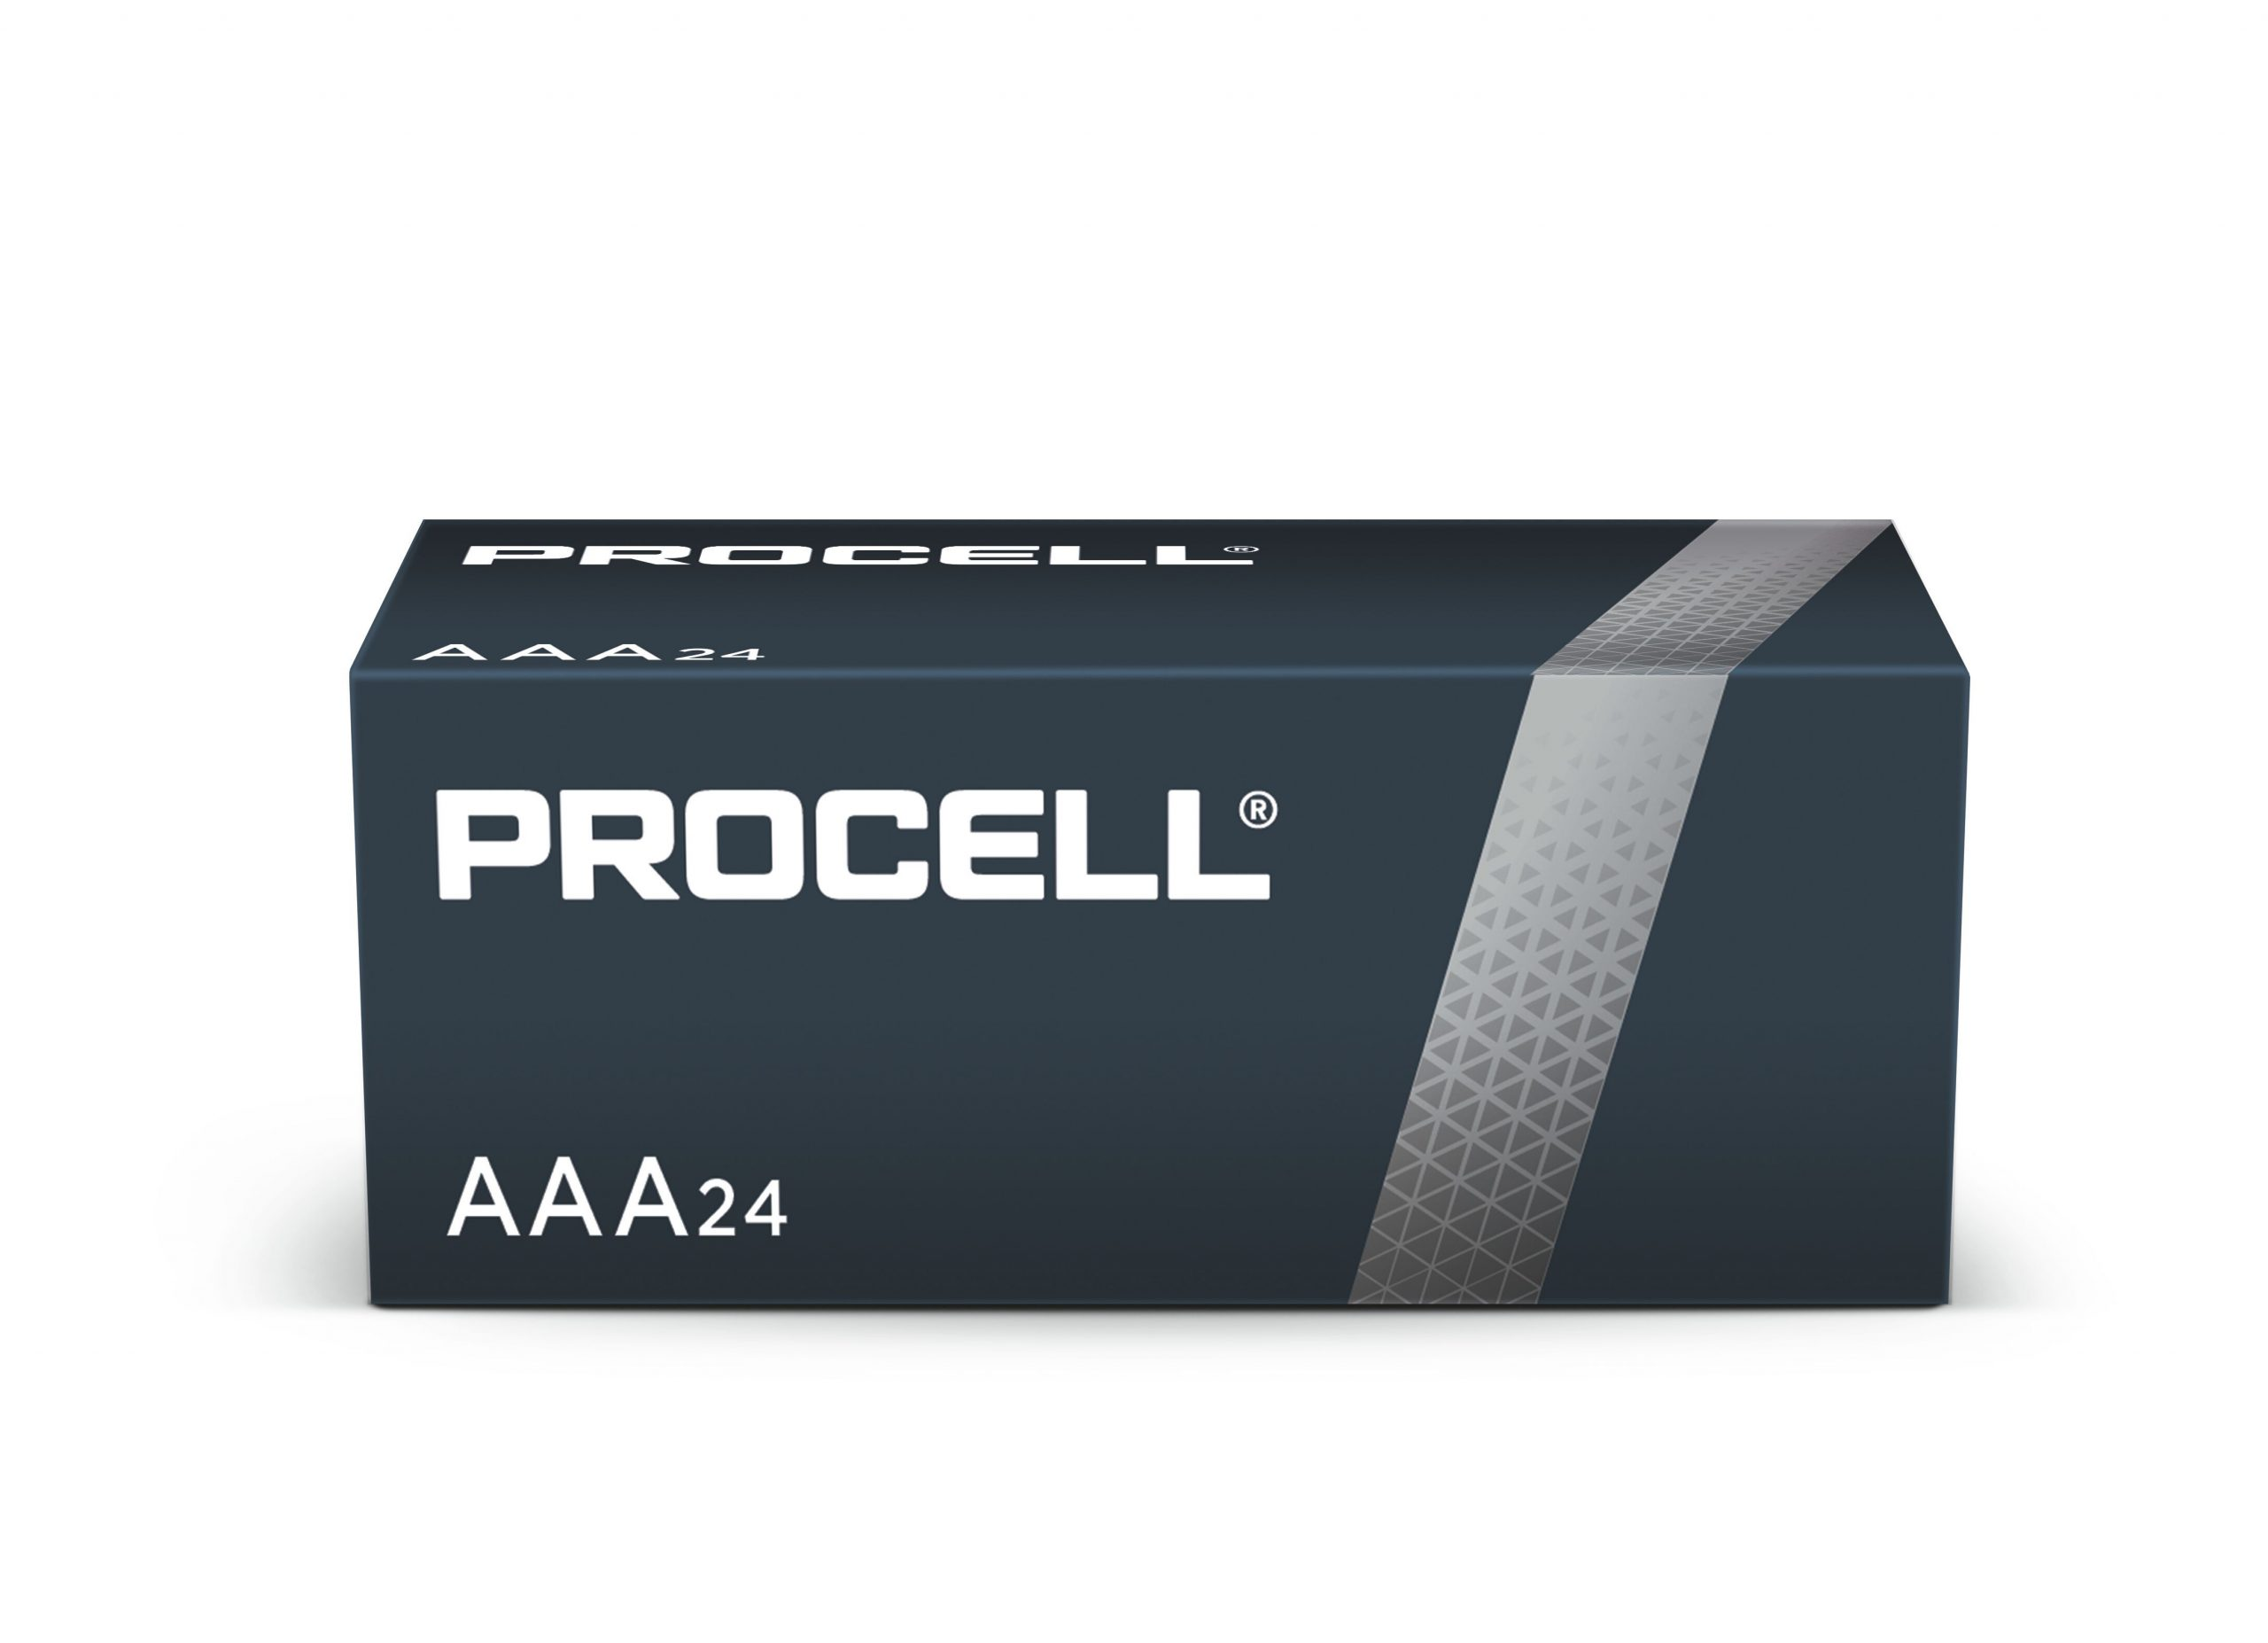 Procell_AAA24_Box_Front